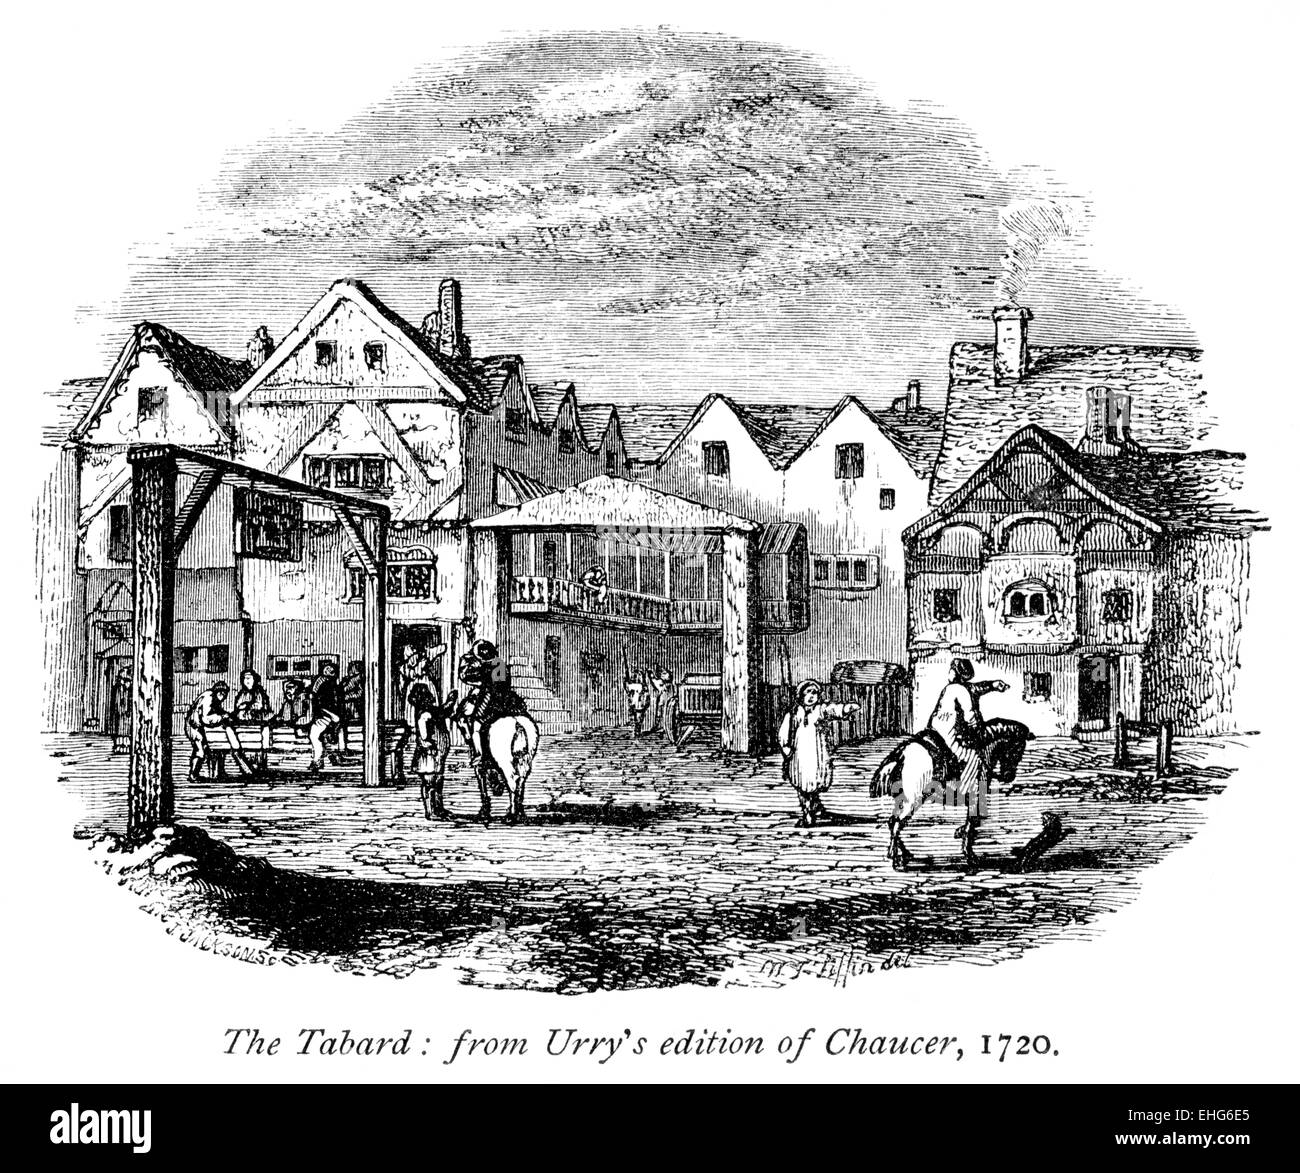 Engraving of The Tabard, Southwark, from Urry's Edition of Chaucer, 1720 scanned at high resolution from a book - Stock Image